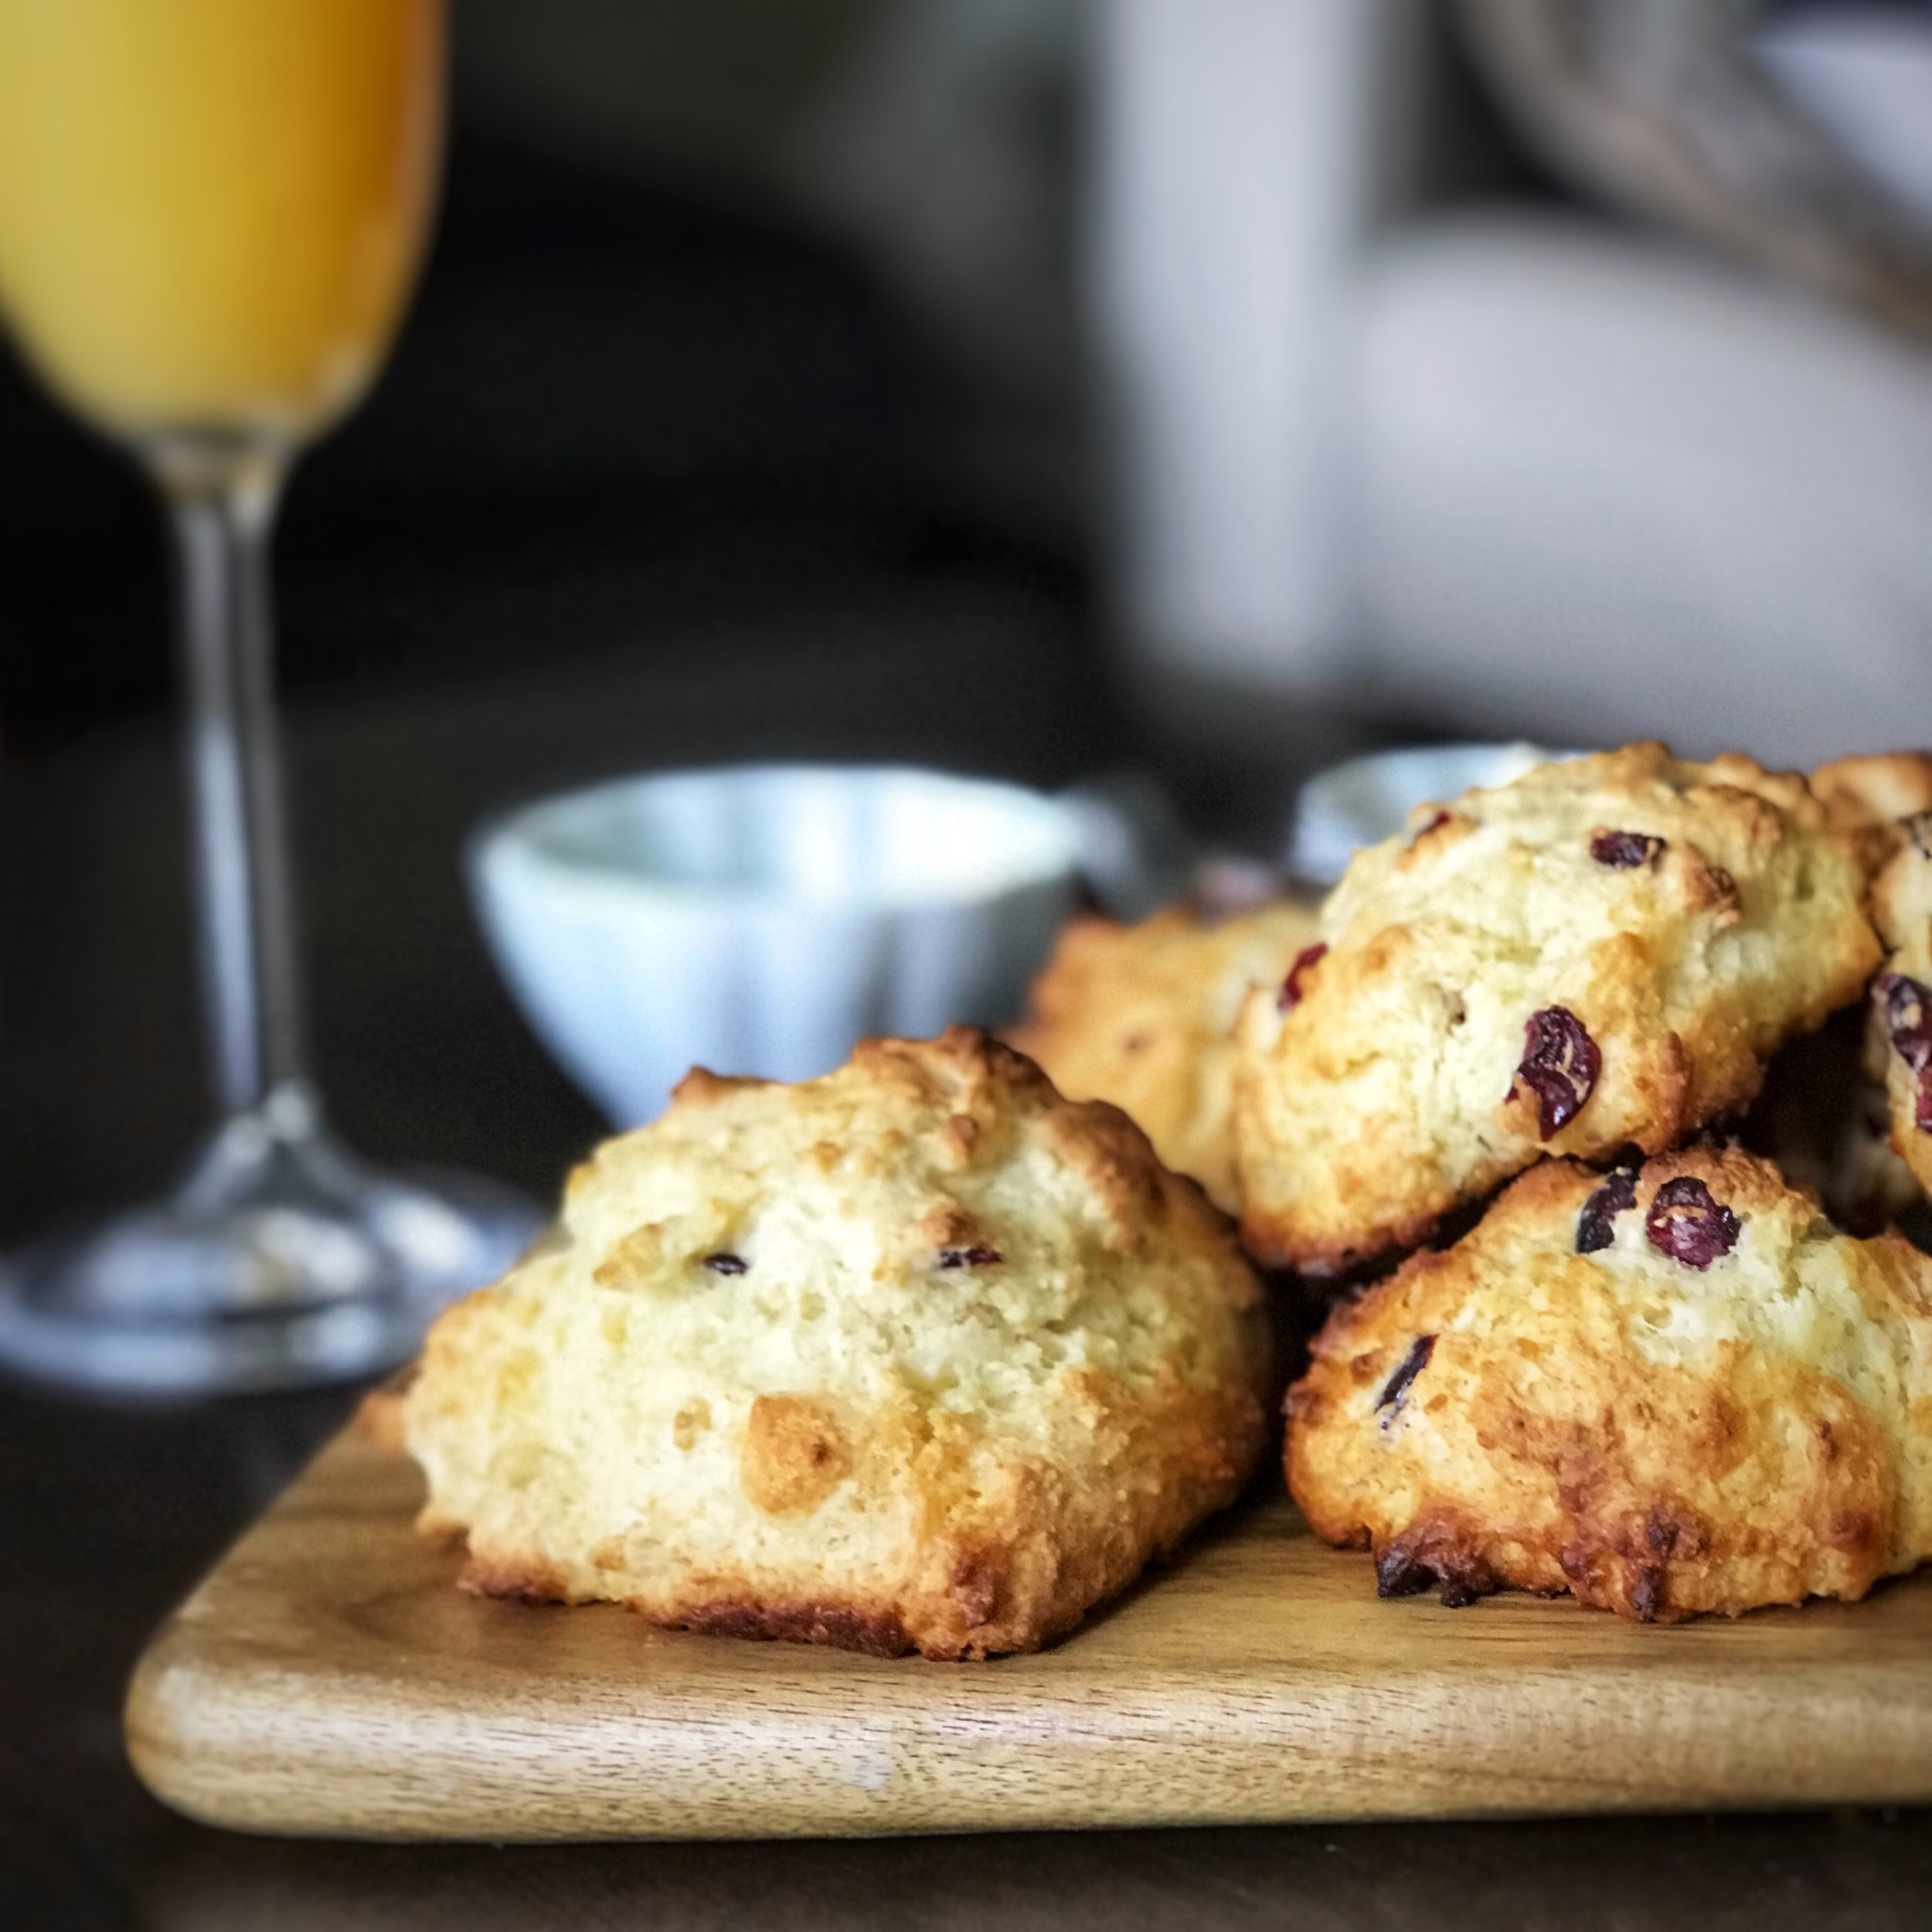 Photo Description: Champagne glass filled with mimosa, a small bowl, in the background. In the forefront, a wood serving board with several roundish cranberry eggnog scones resting on top.